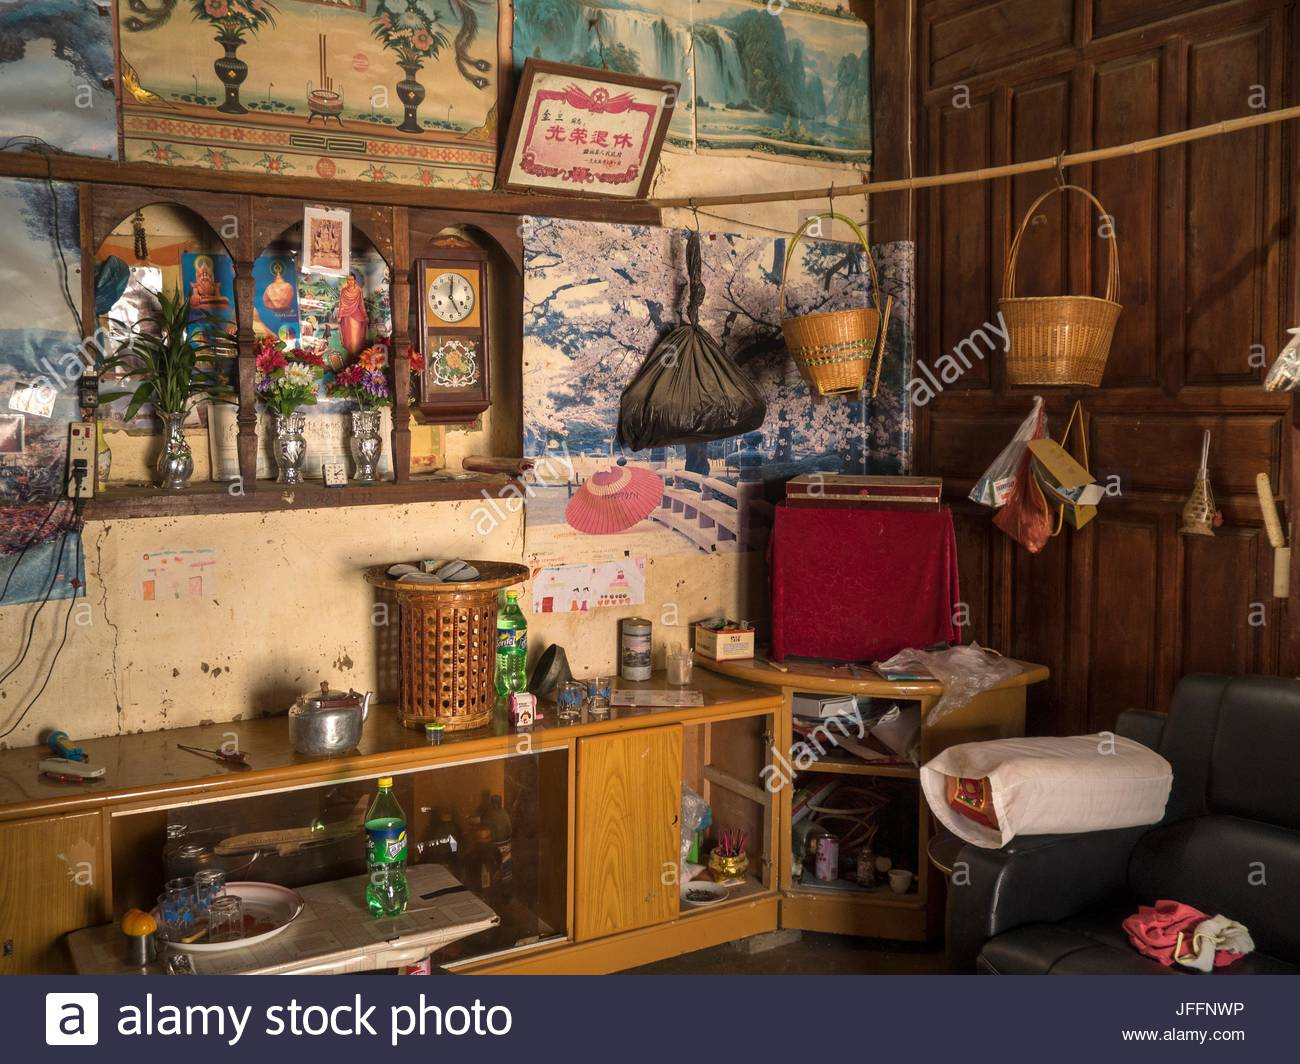 The interior of a Deang minority home in Yunnan Province. - Stock Image